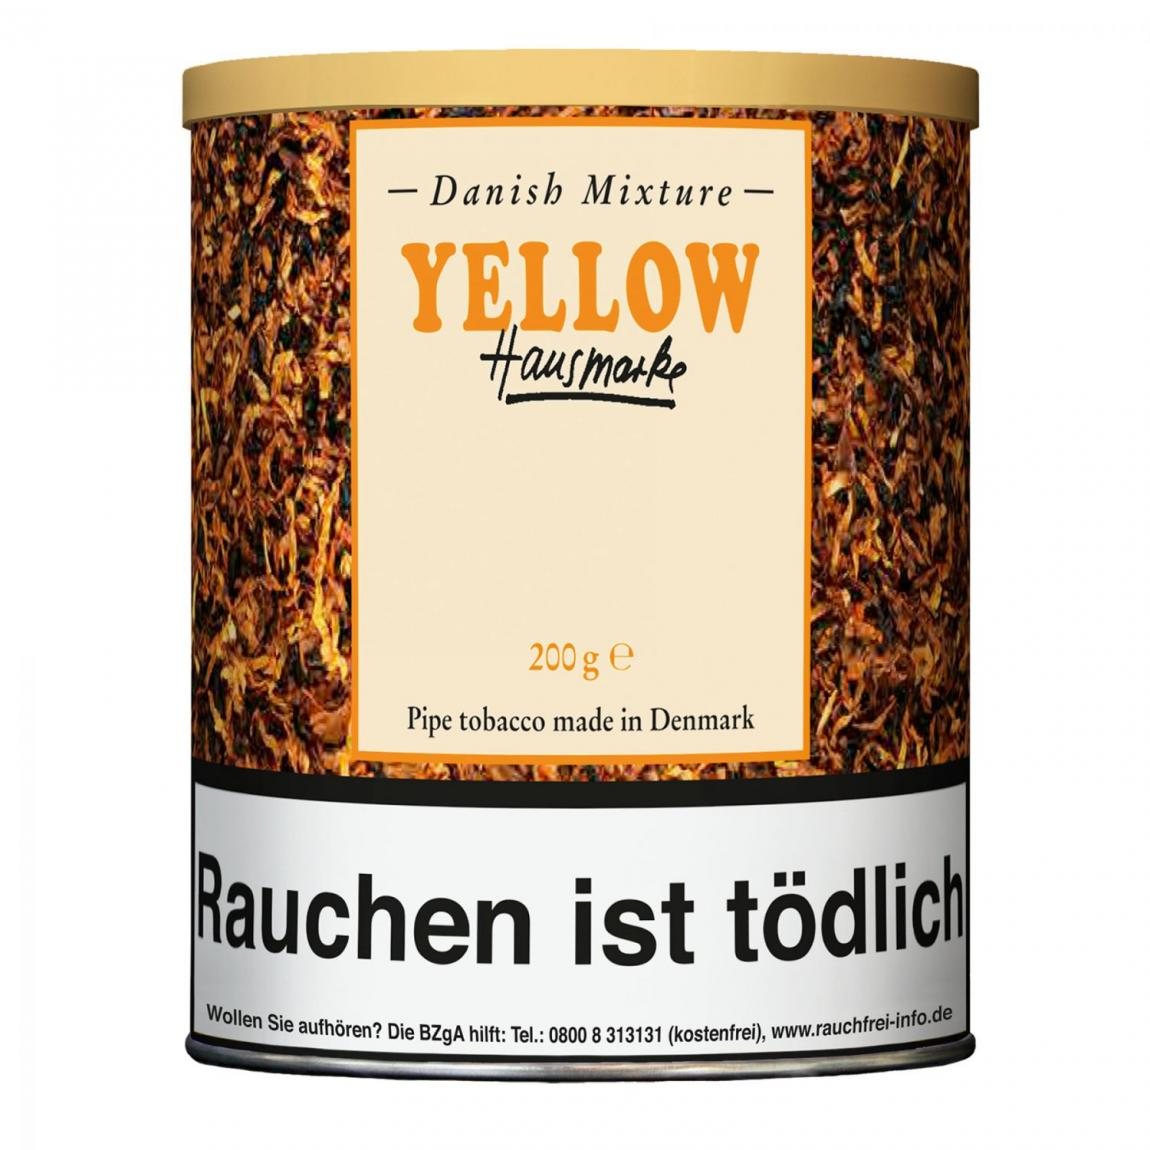 Hausmarke »Danish Mixture Yellow« 200g Dose